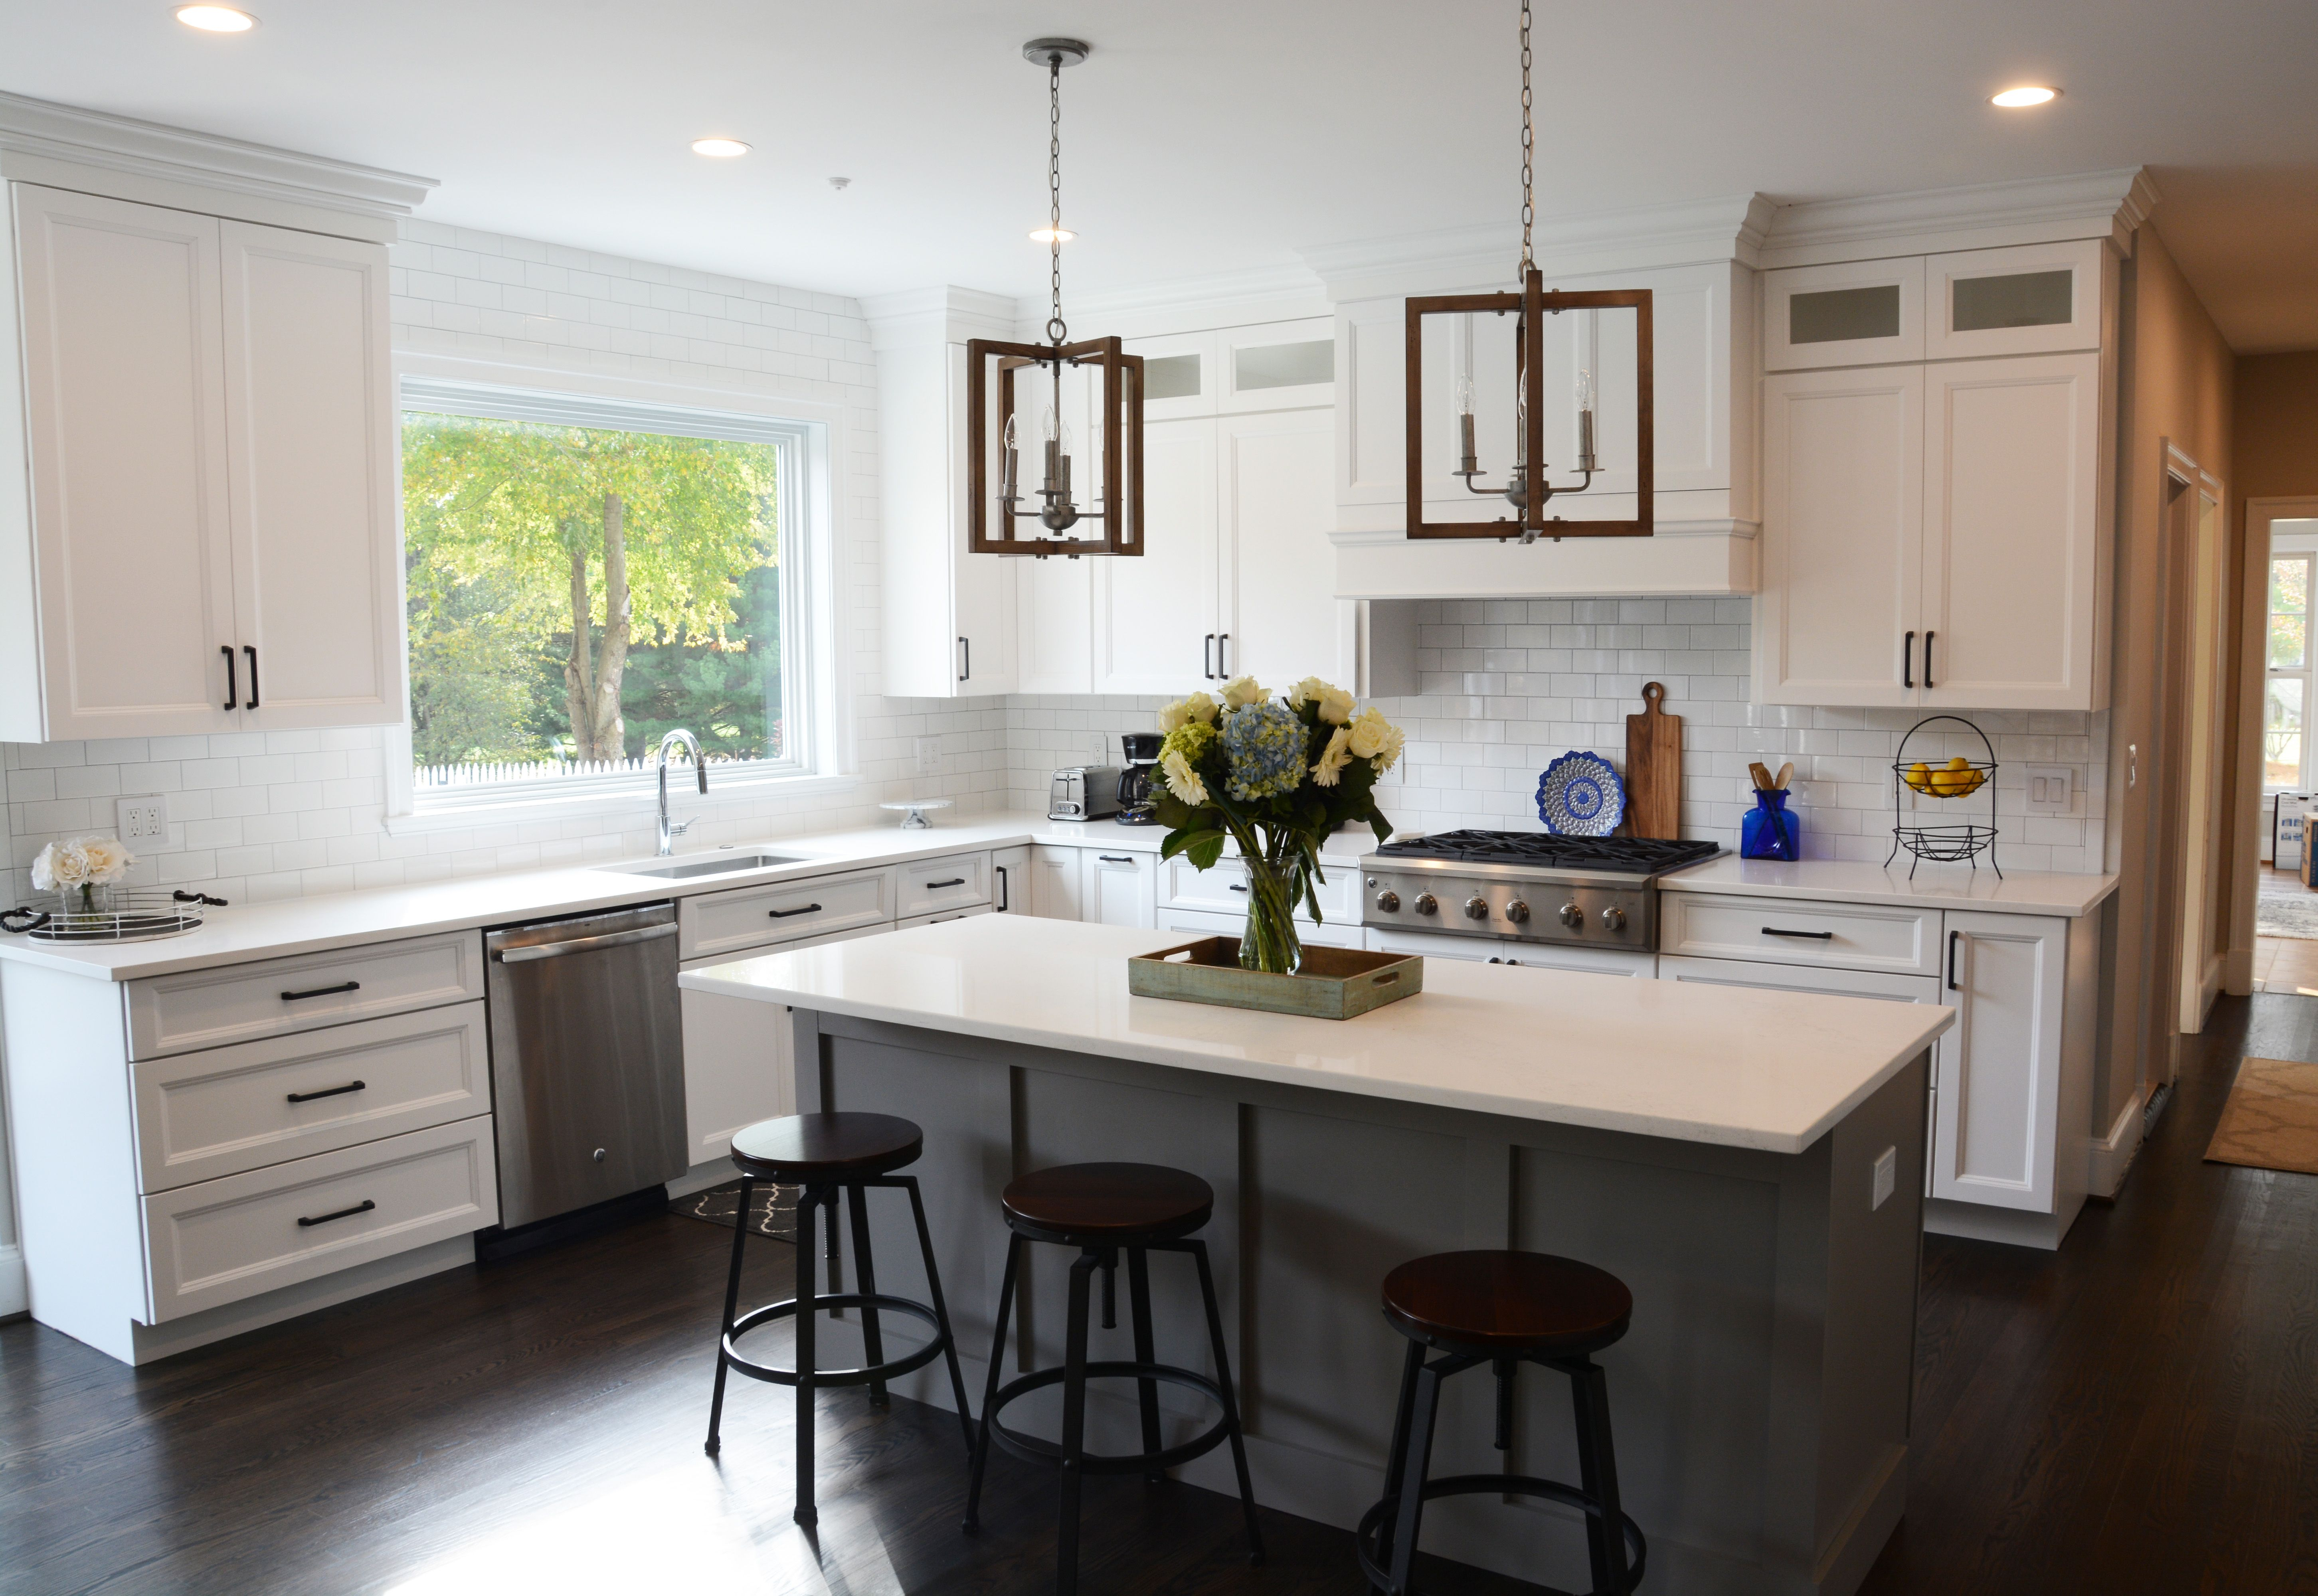 Cabinet Gallery - Brighton Cabinetry | Home kitchens ...